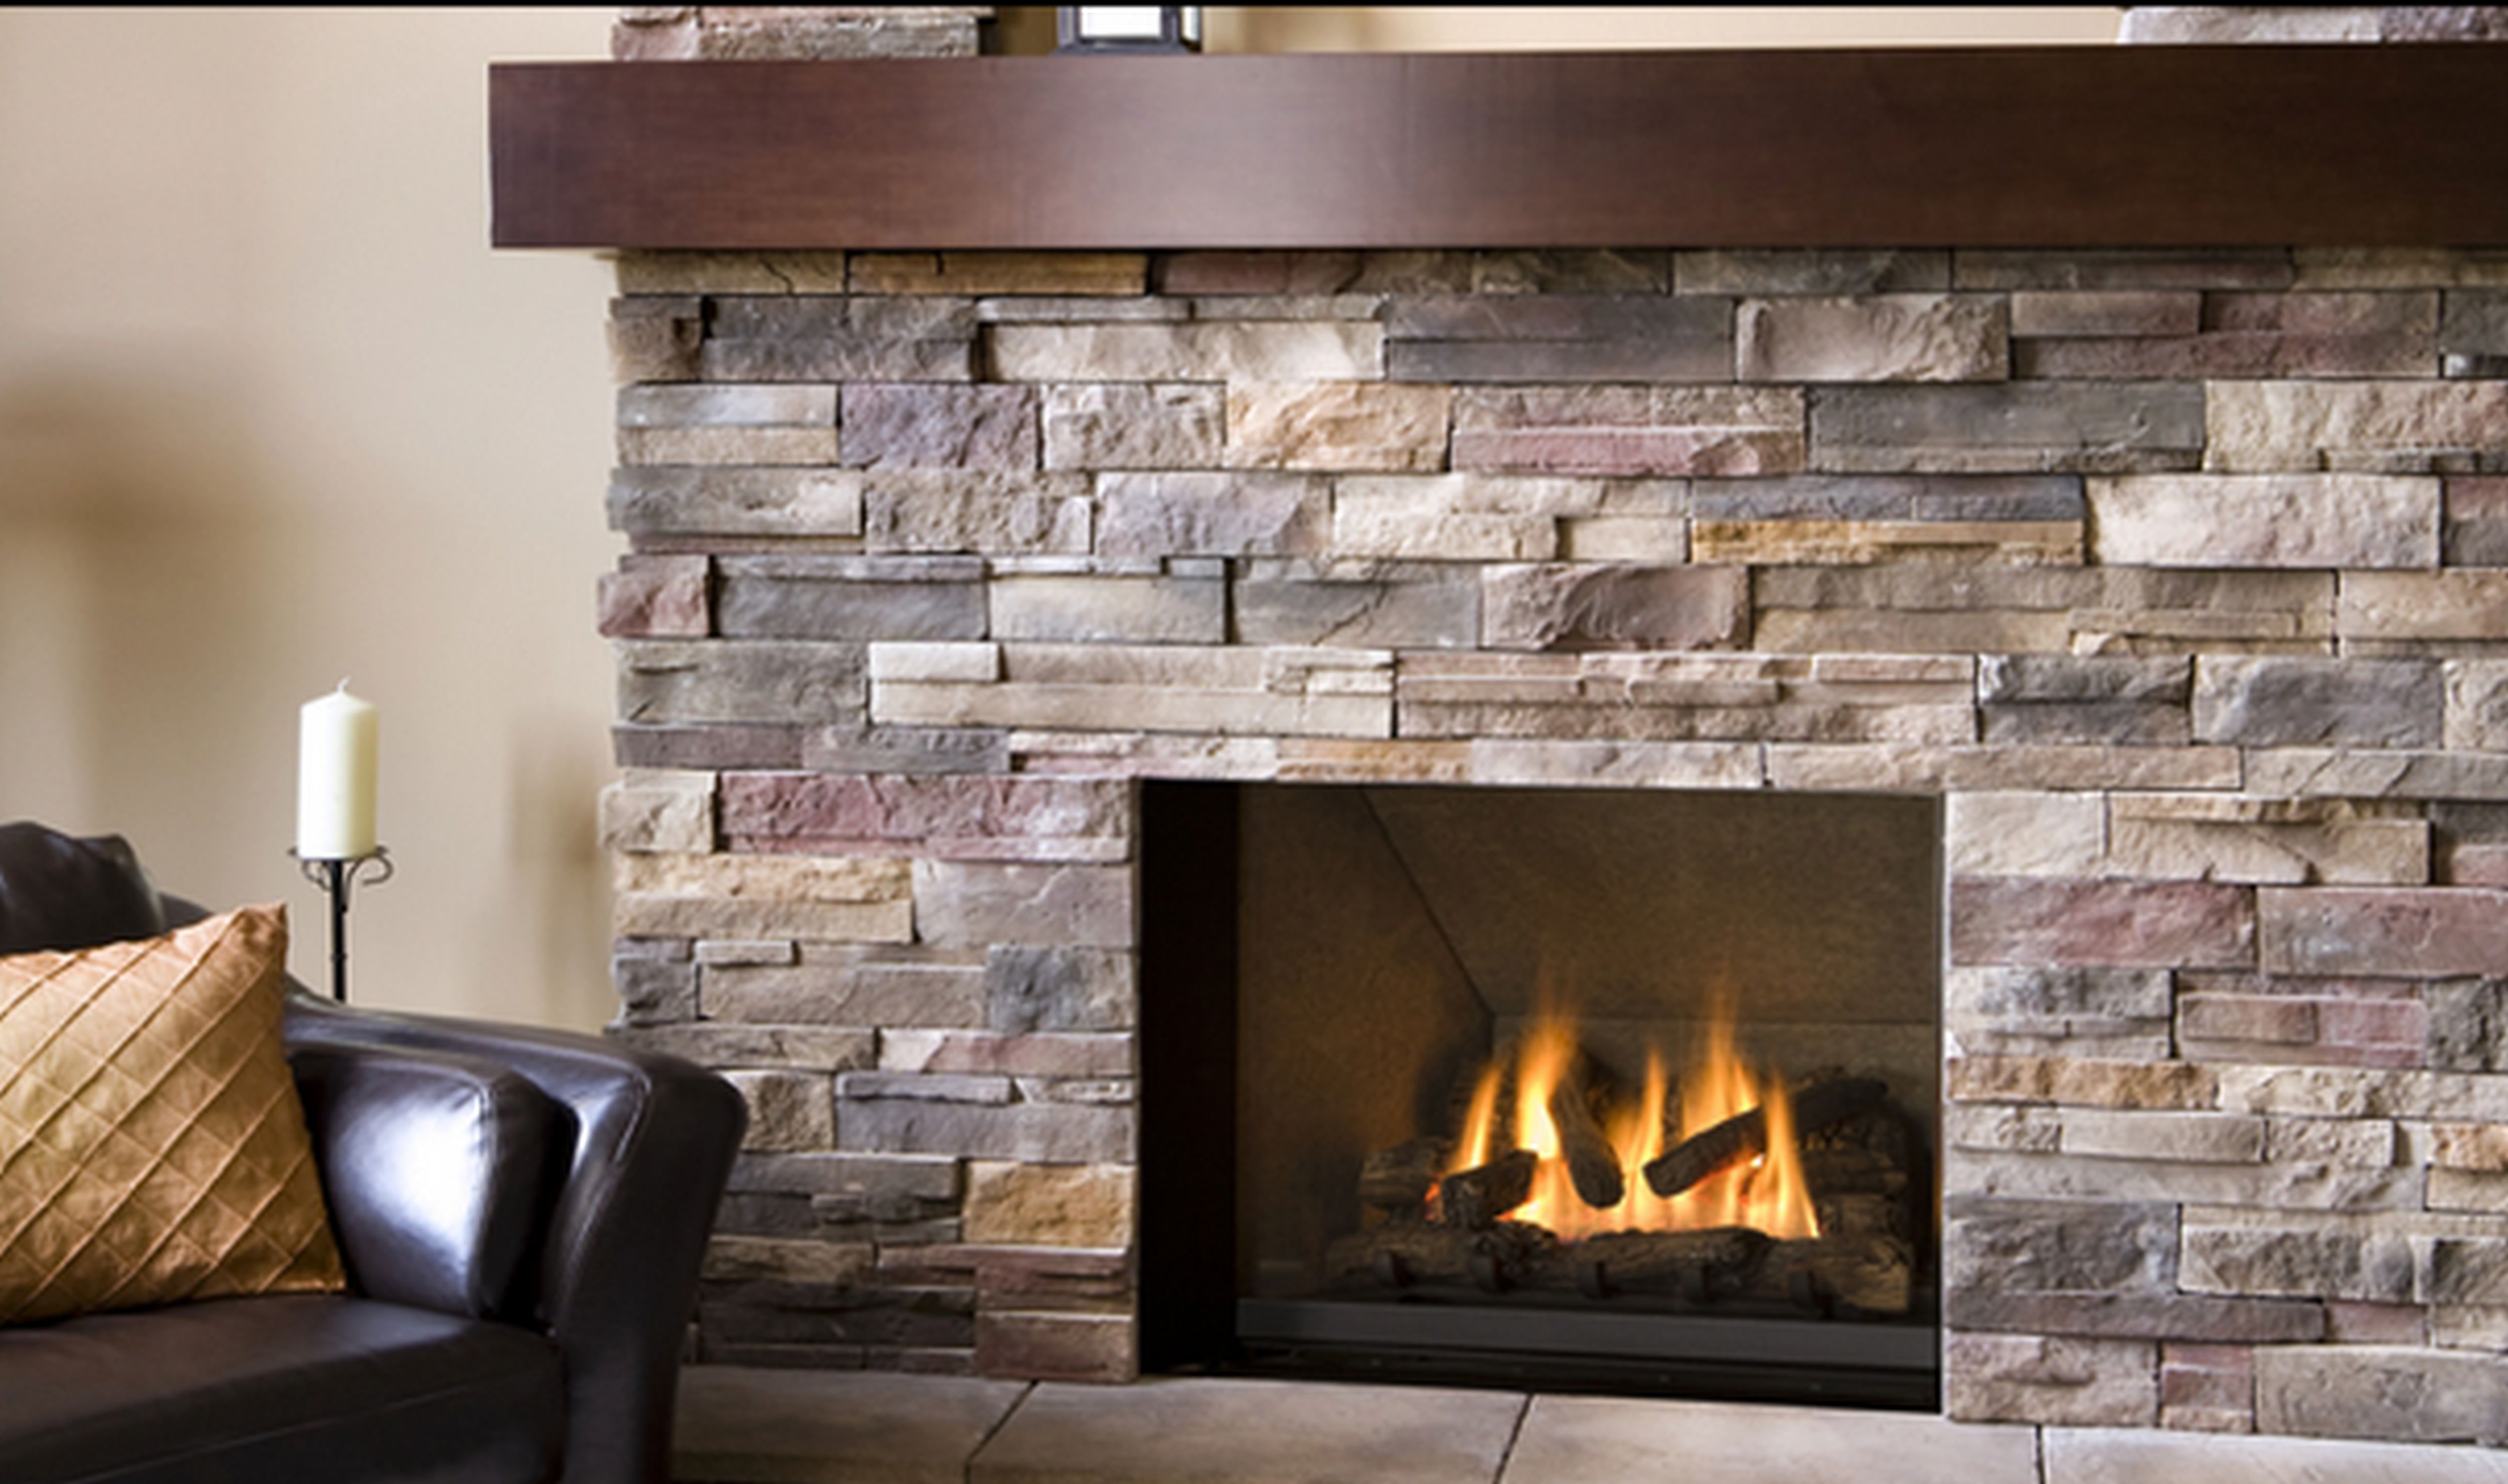 25-Stone-Fireplace-Designs-to-Warm-your-Home-15